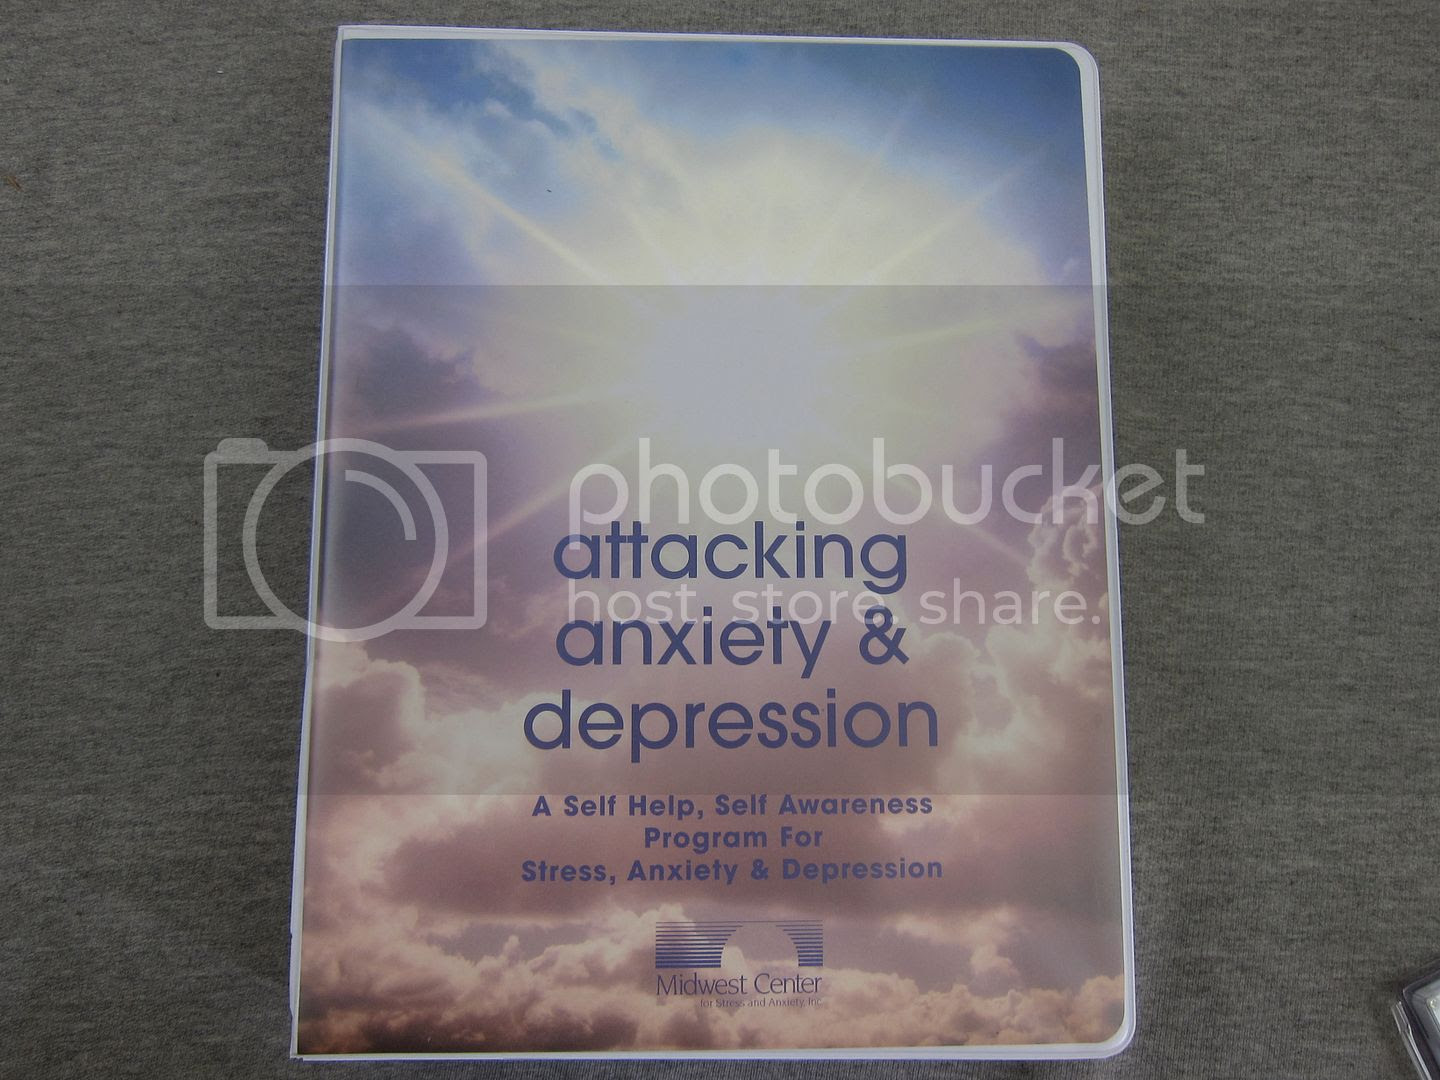 Midwest Center Attacking Anxiety & Depression Program ...